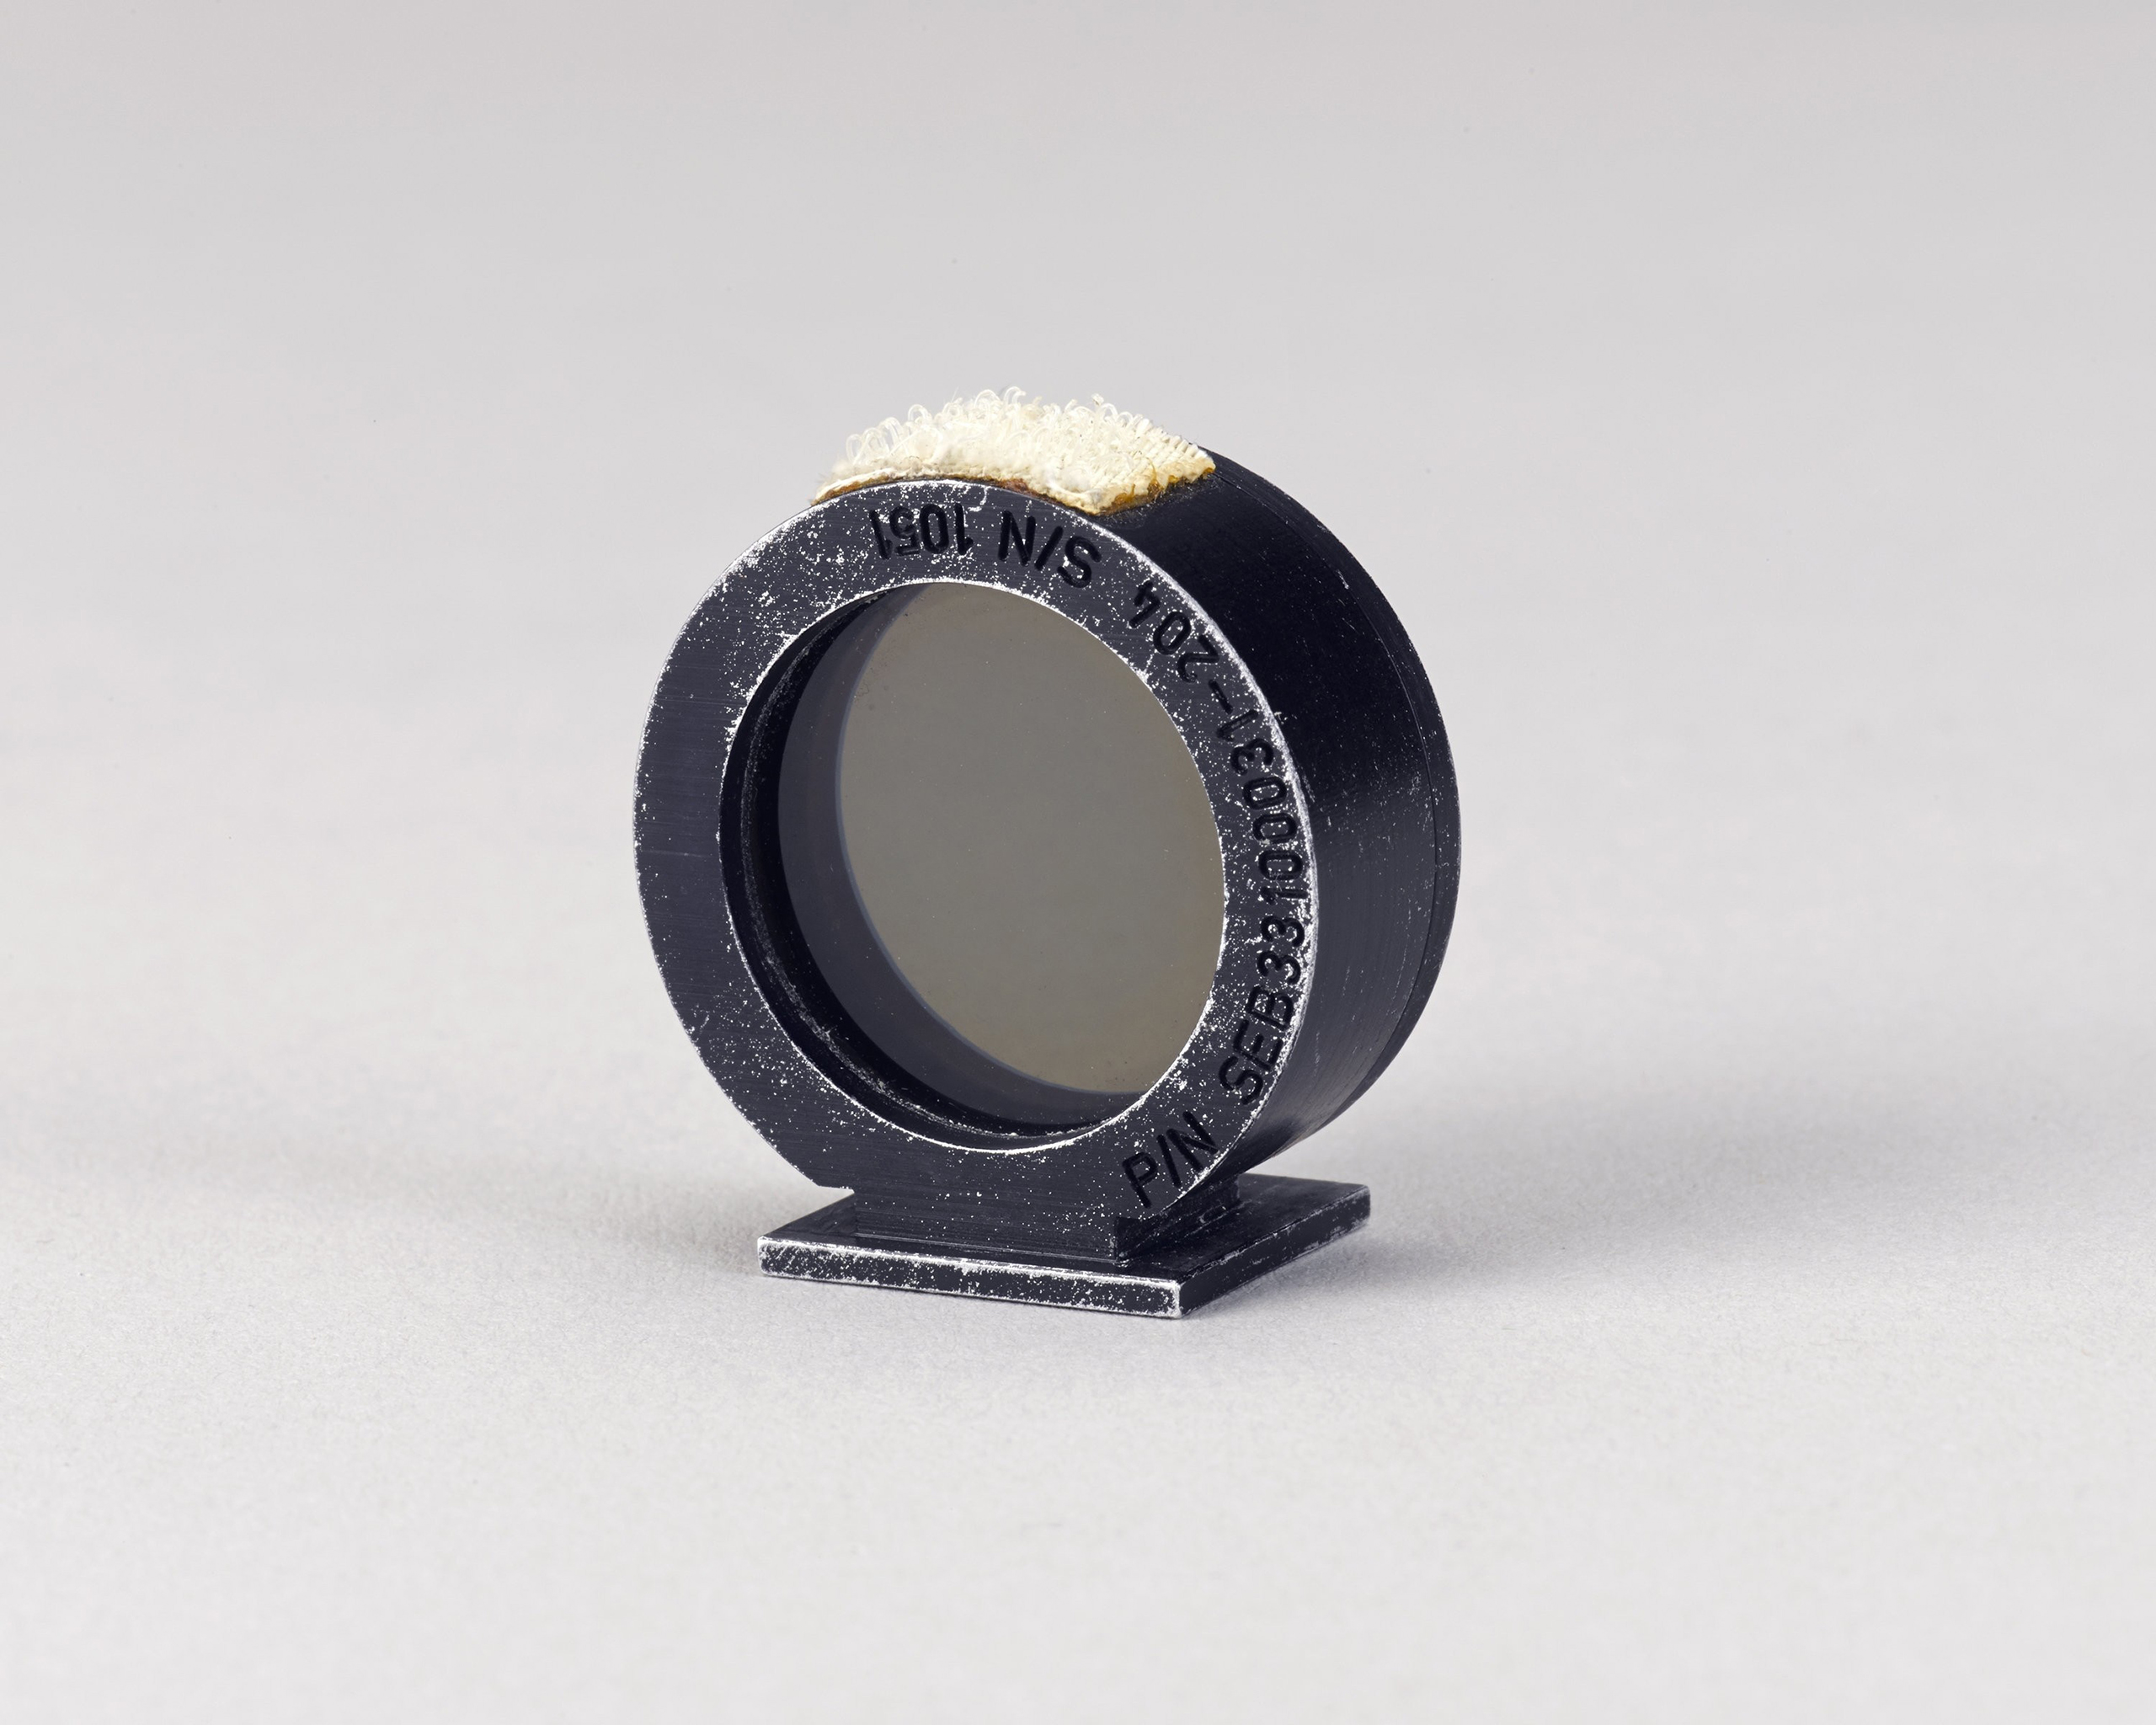 Motion picture ring sight used on the Moon during Apollo 15. This camera accessory was used by astronaut James B, Irwin on the 16mm camera inside the lunar module in 1971. It was on the lunar surface for 66 hours.